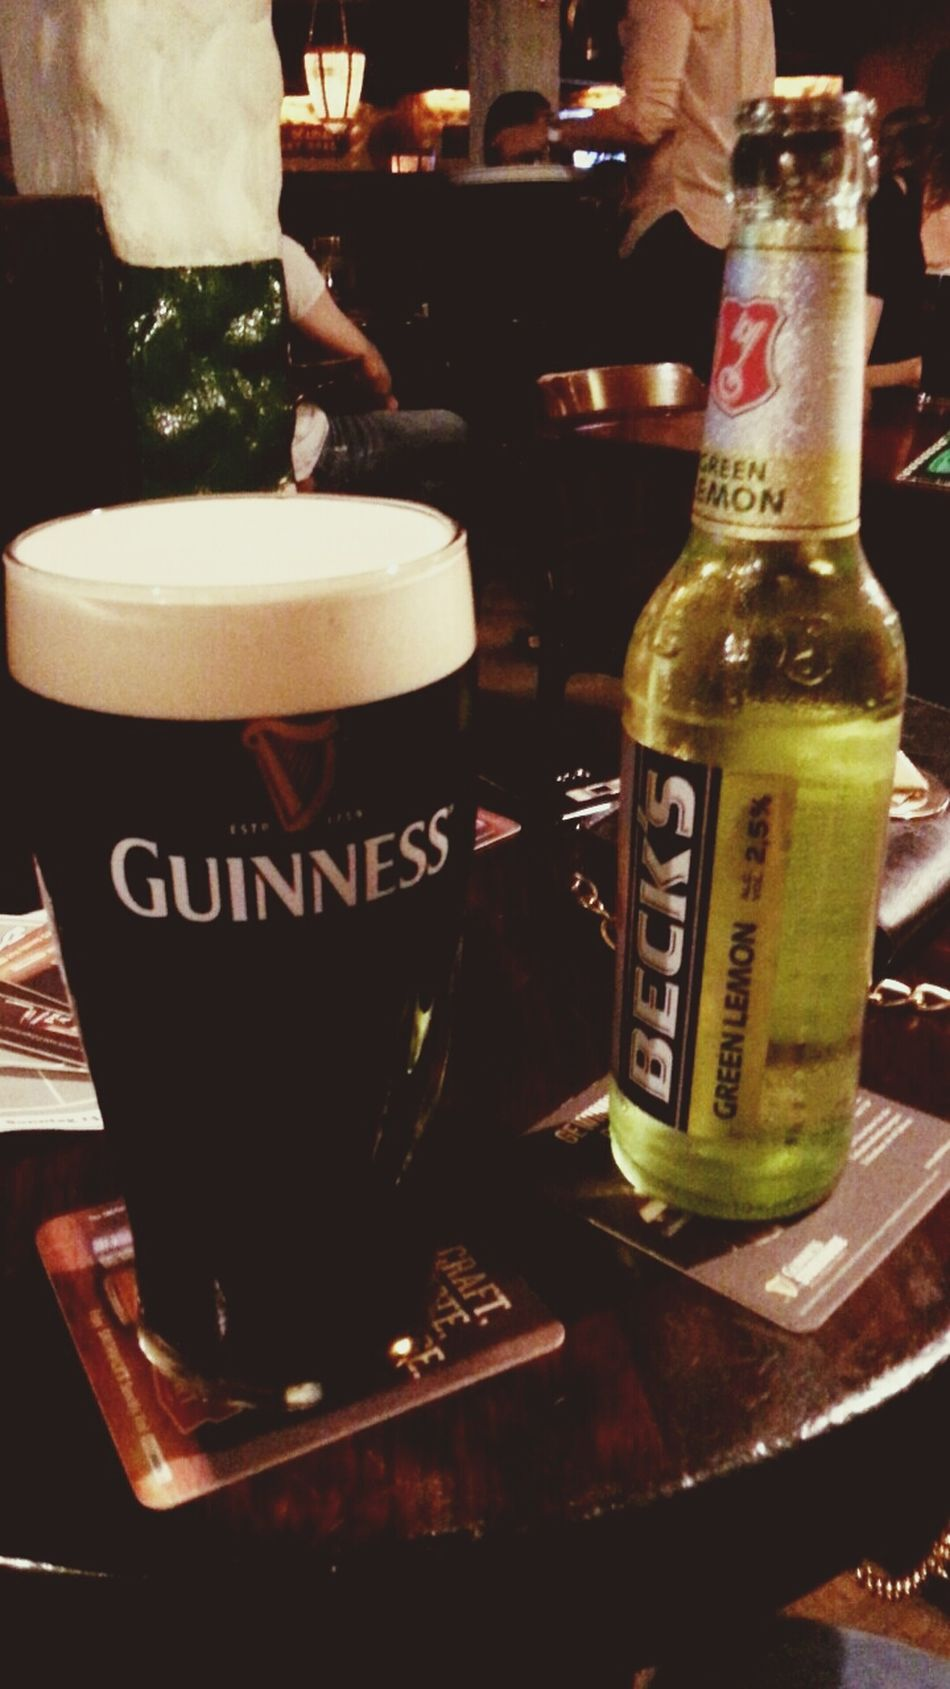 The Love Of My Life Guinness I ❤ GUINNESS Yes Sir